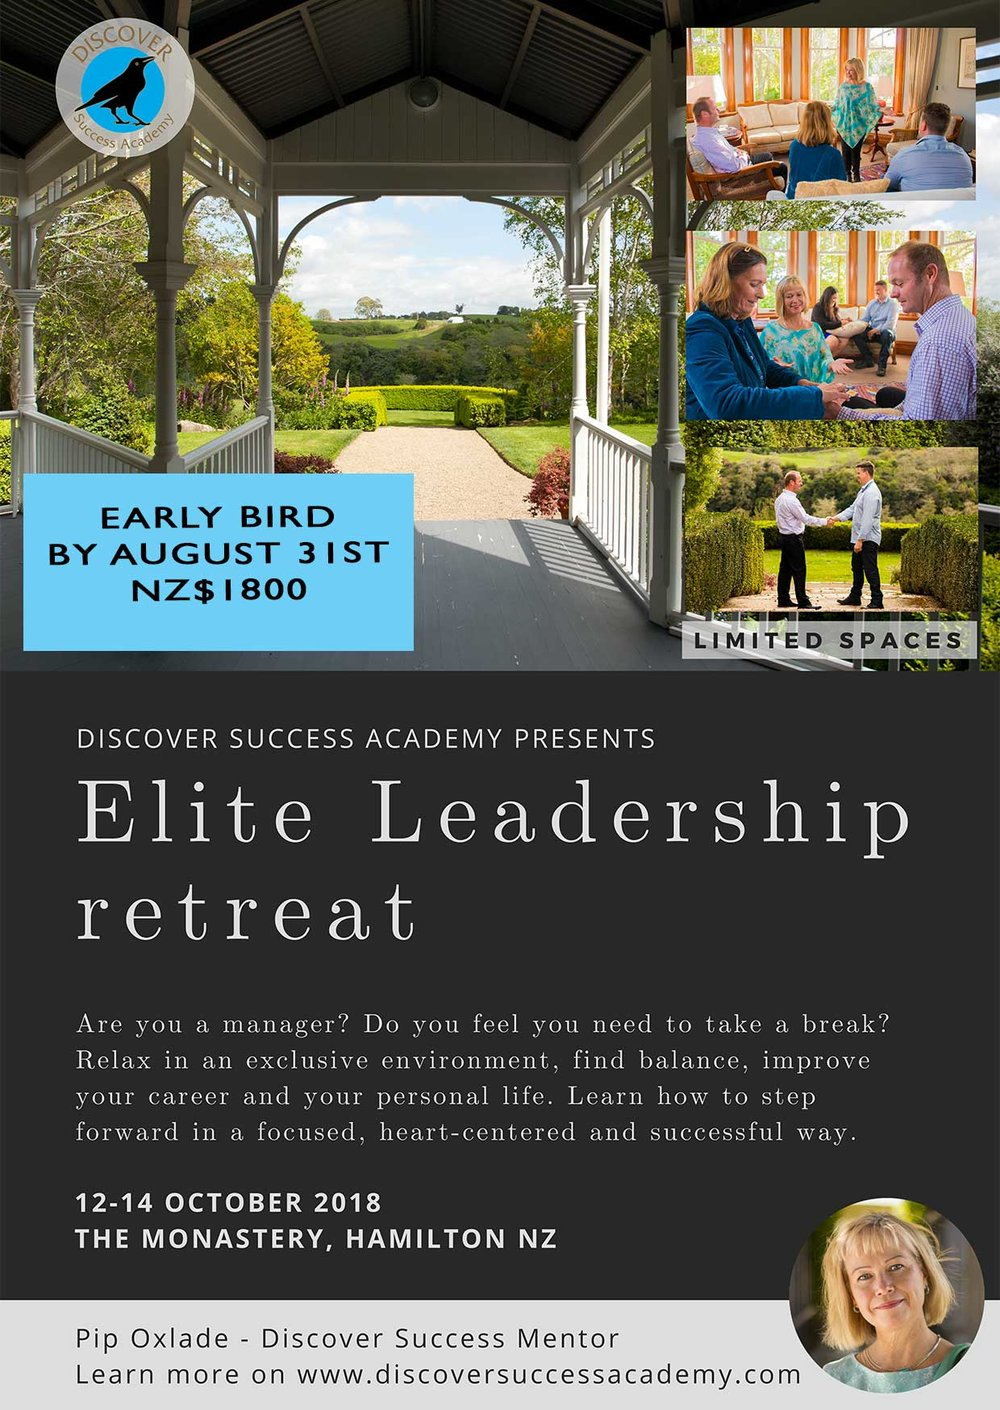 PipOxlade-DiscoverSuccessAcademy-Retreat-AD-copy.jpg